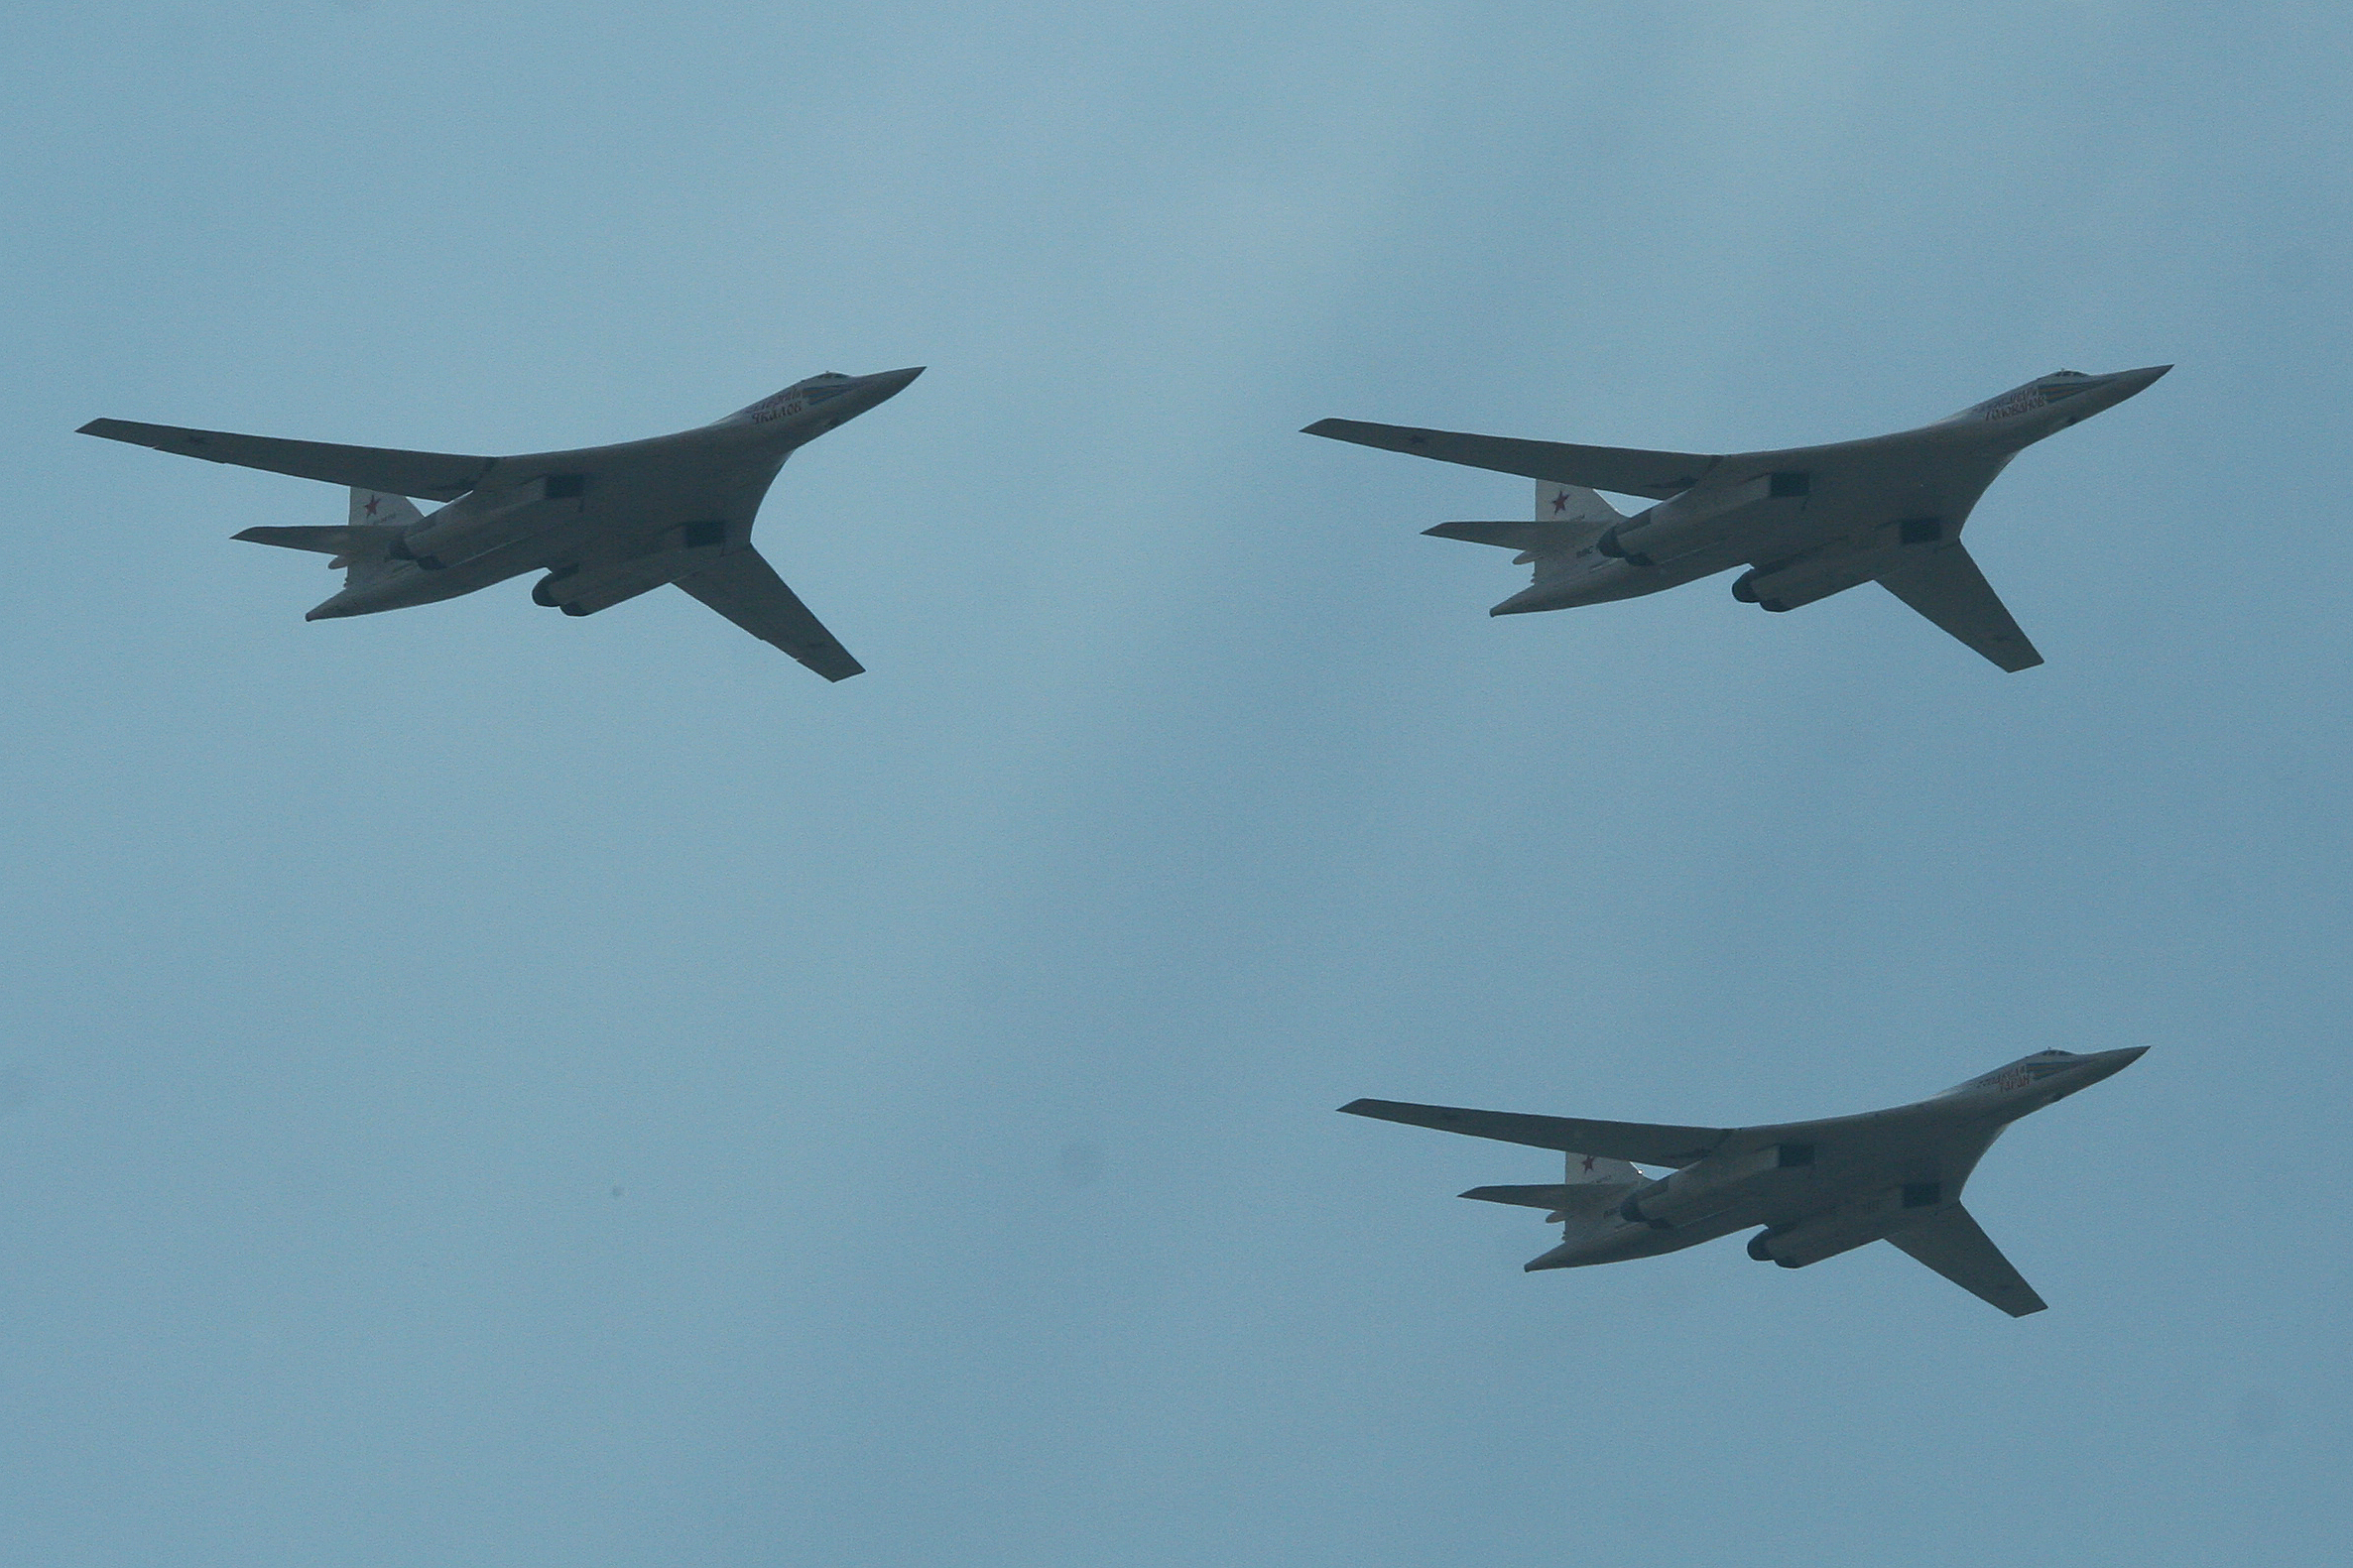 File:Tupolev Tu-160 Blackjack formation - Zhukovsky 2012 ...